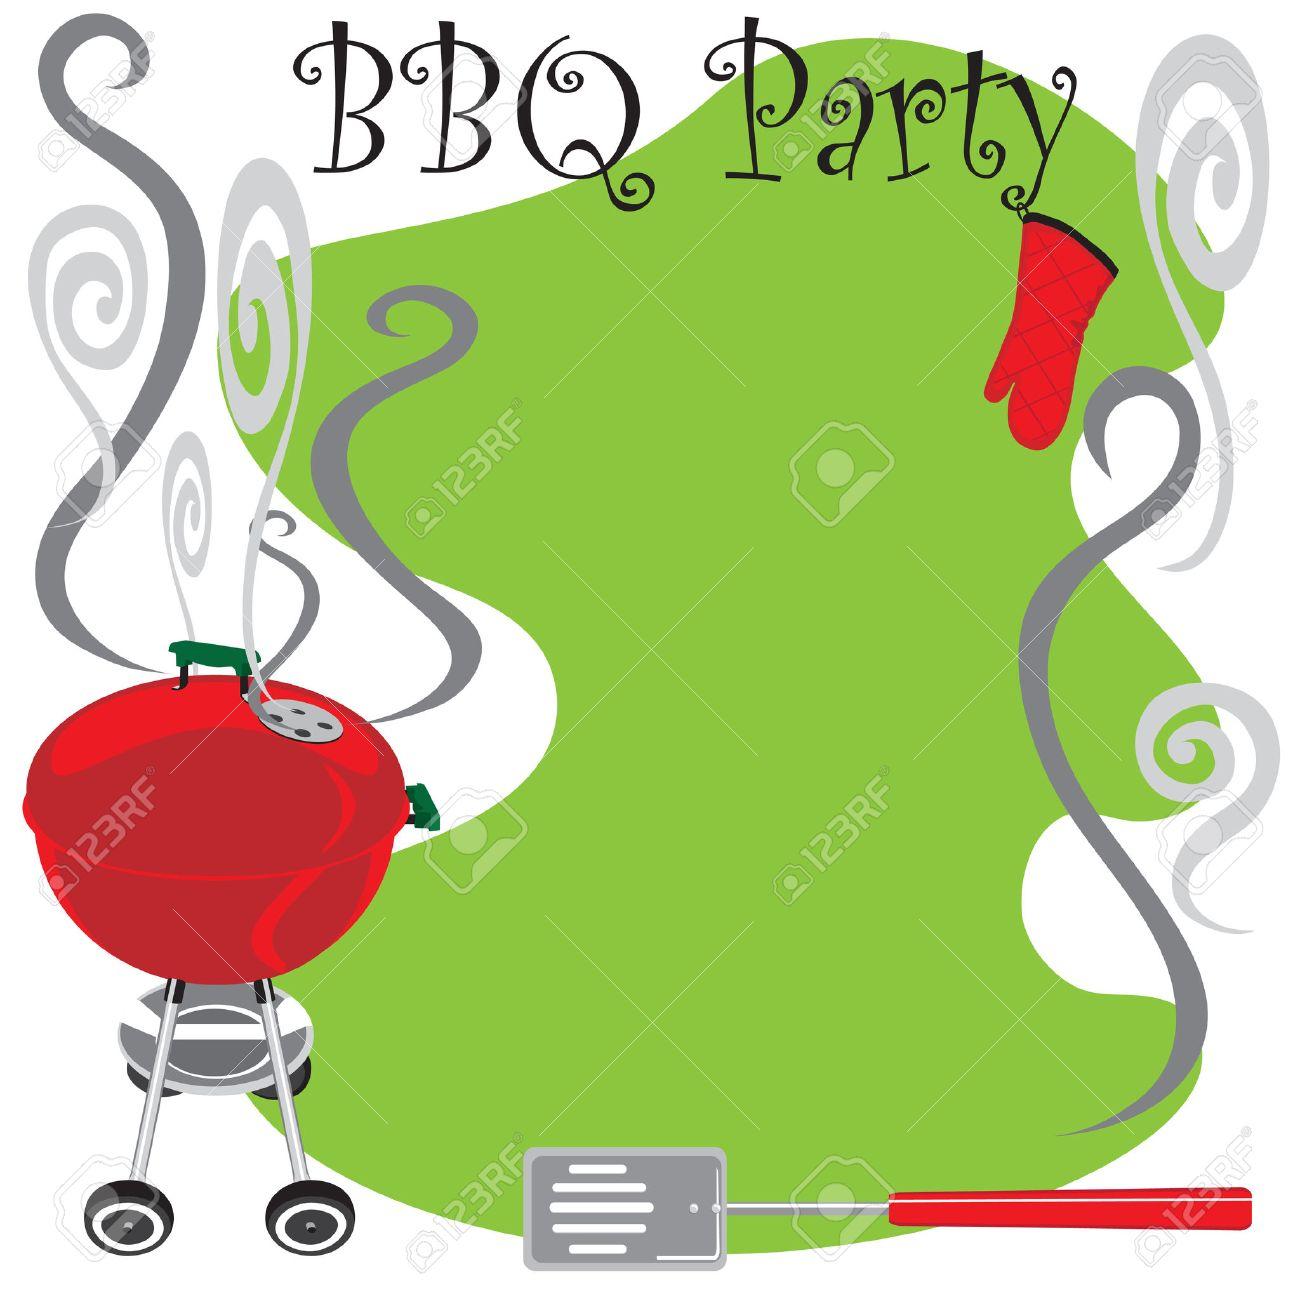 Cookout border clipart hot dog cookout invite stock vector art - Backyard Party Cute Bbq Party Invitation With Smoking Hot Grill